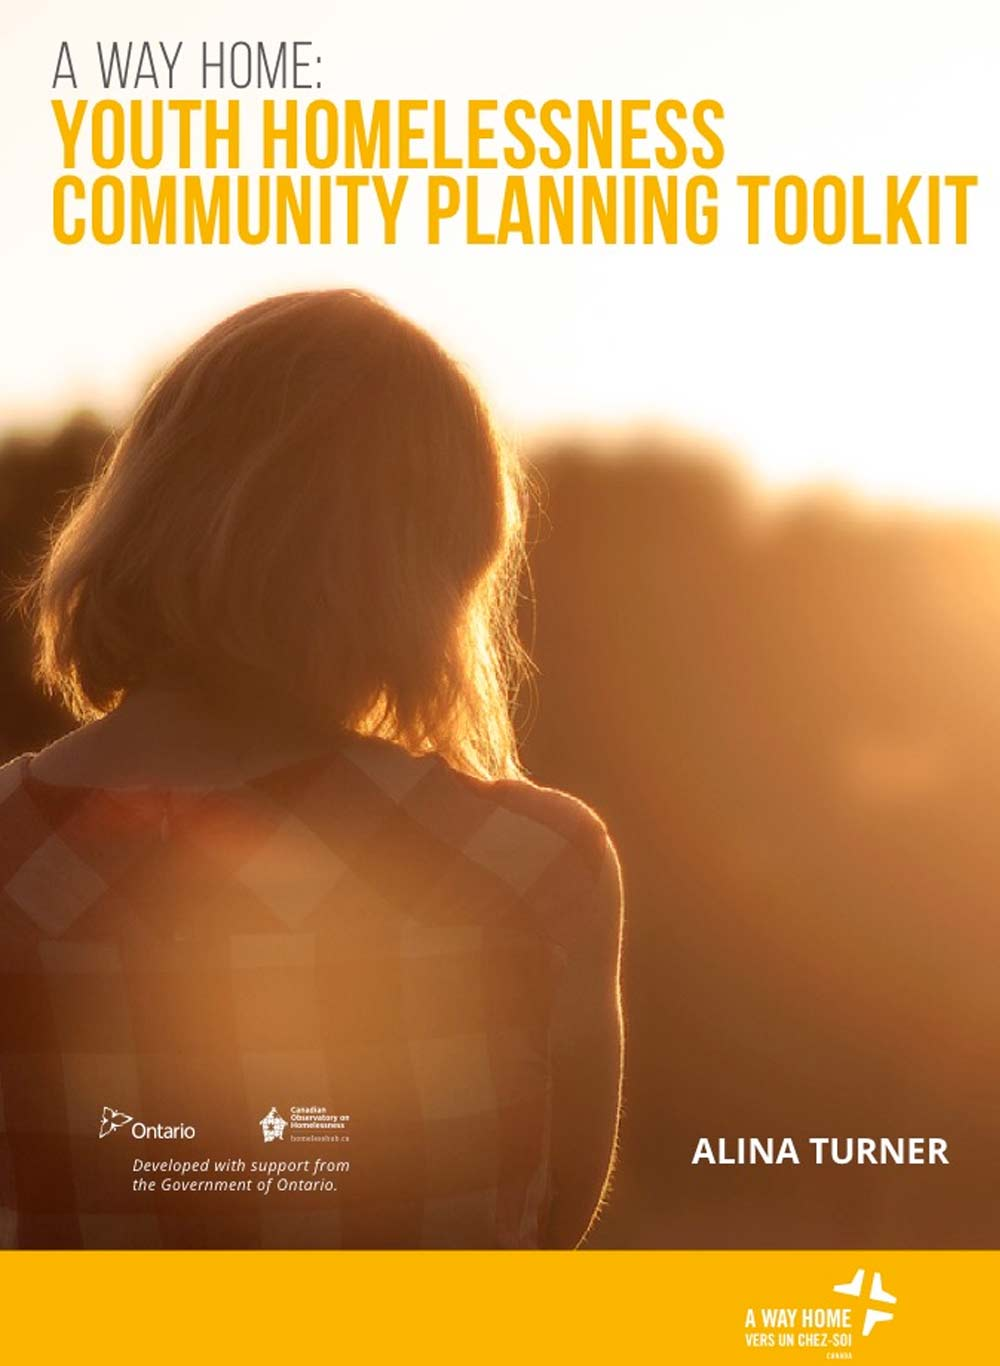 Planning Guide to End Youth Homelessness - This community planning toolkit was developed for A Way Home Canada to support their work in ending youth homelessness. The document provides a detailed look at what it takes to develop a local strategy to address this complex social issue. The guide outlines engagement strategies, government relations, budgeting, best practice analysis and community readiness with a Community Impact lens.Download Report